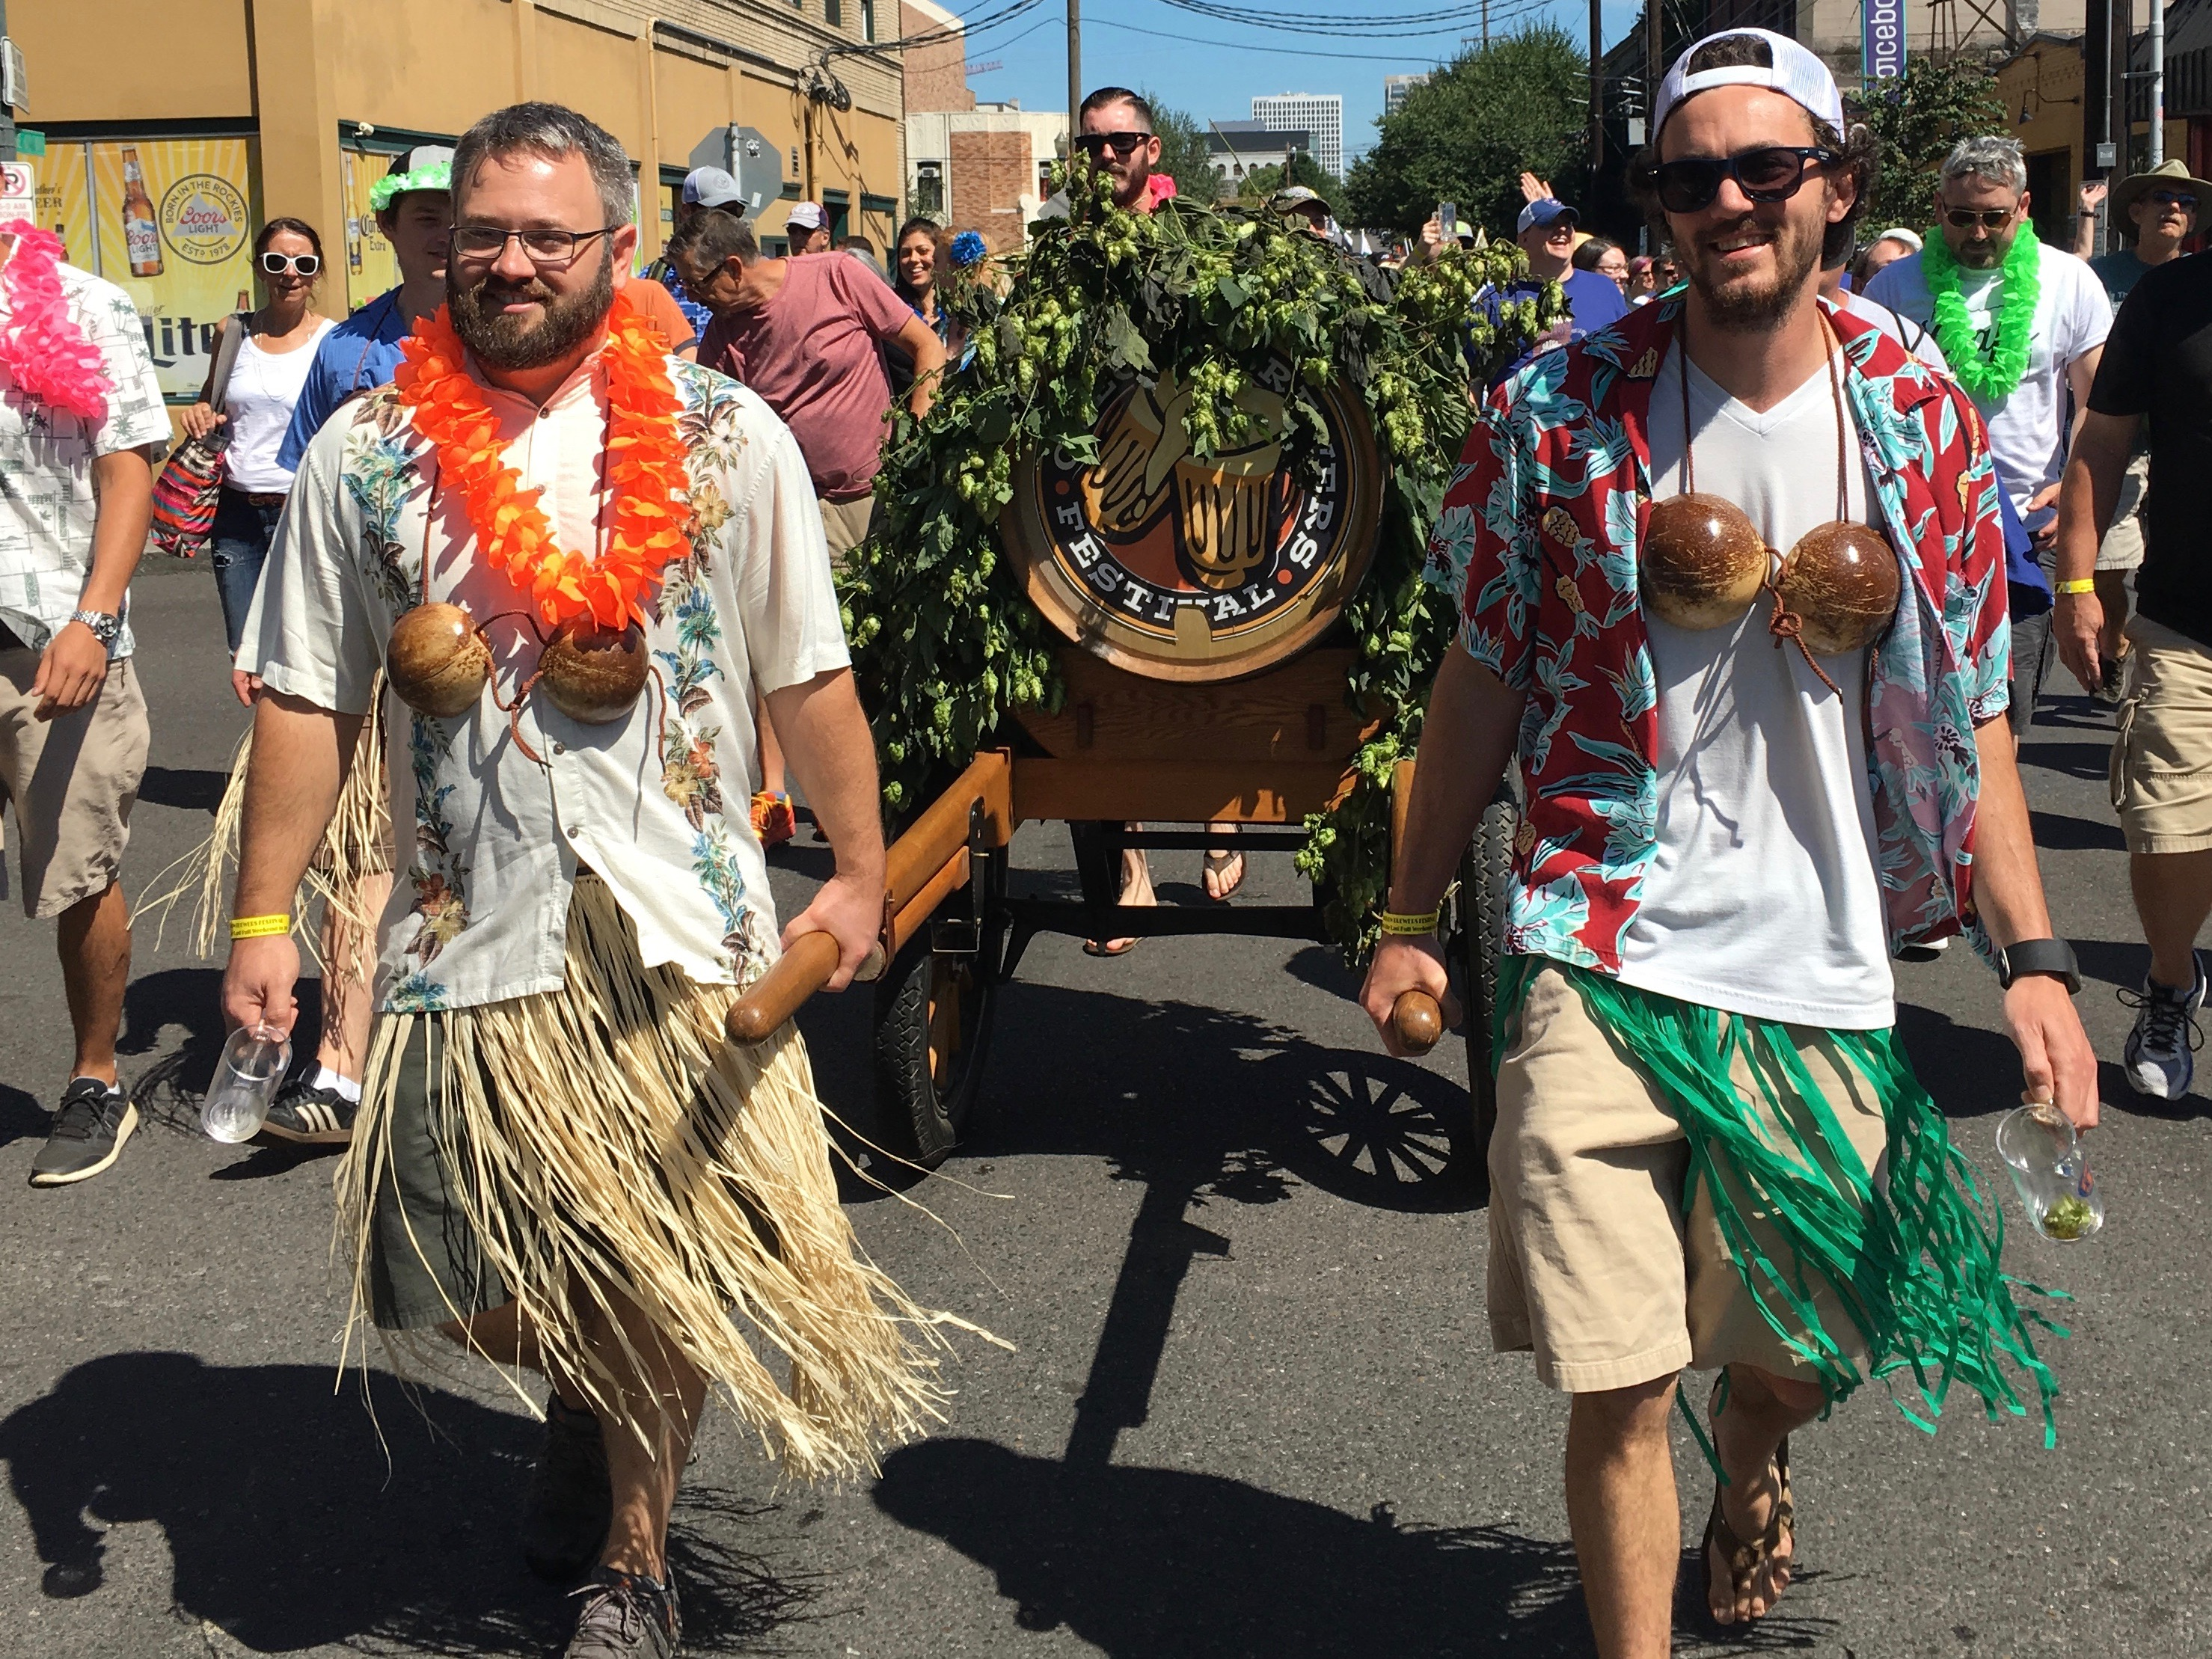 Laurelwood Brewing marches in the 2016 Oregon Brewers Festival Parade pulling the OBF Ceremonial Keg.